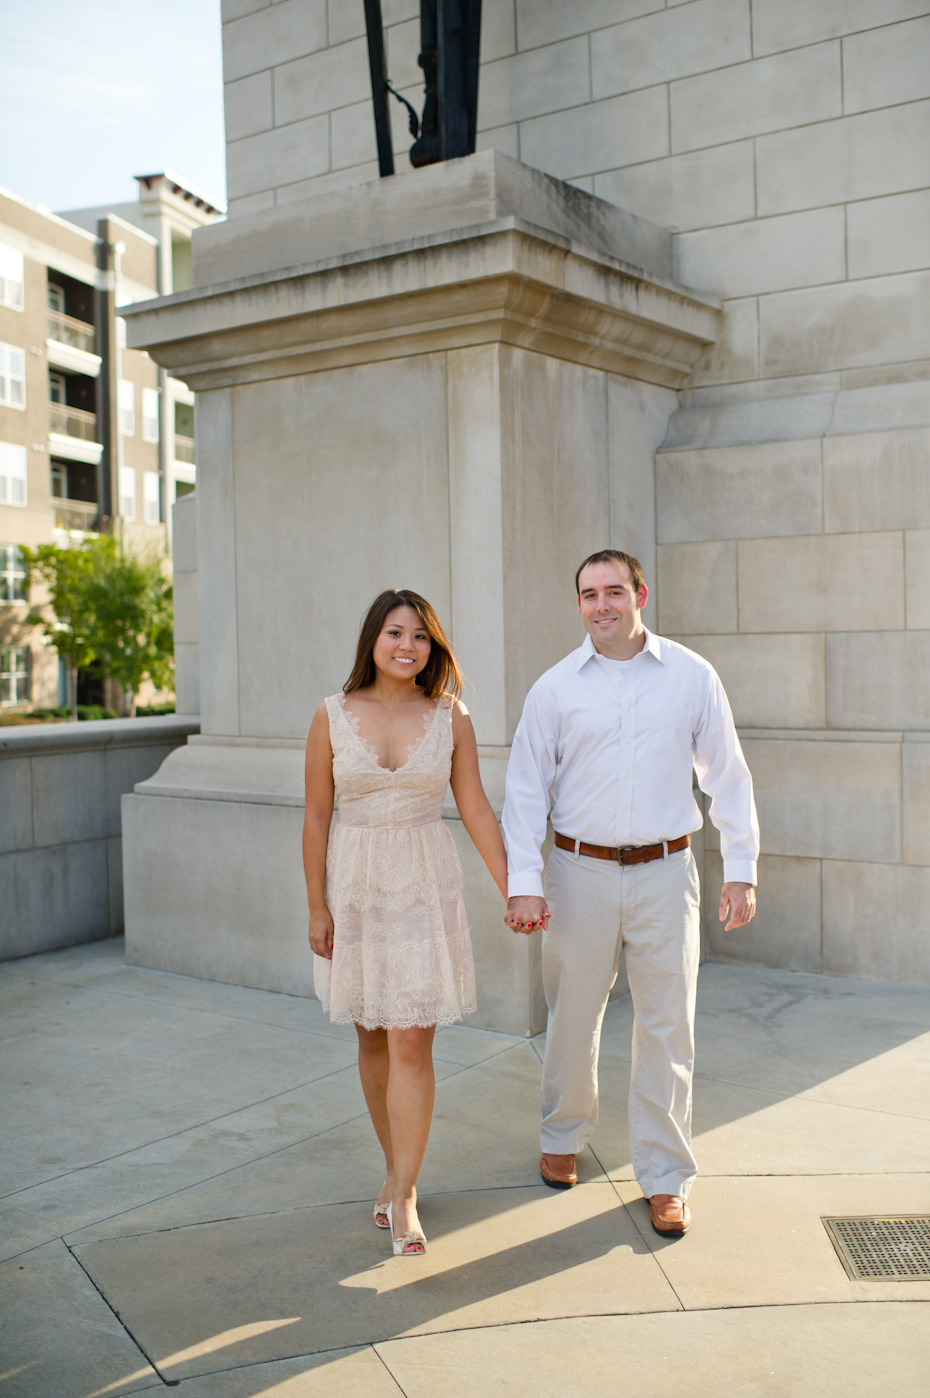 Millenium Gate Engagement Picture